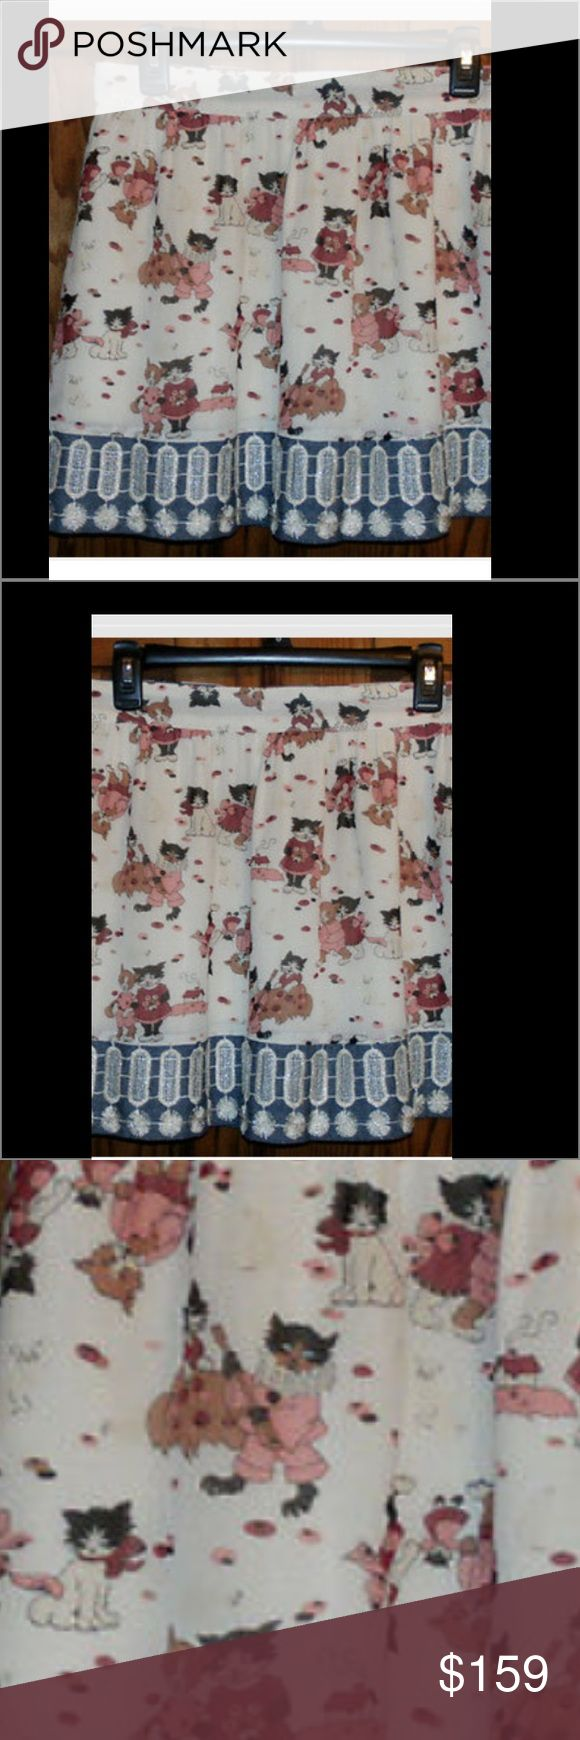 NWT.   ANNA SUI 2015.  SZ 8.  Feline print skirt. This is too cool.  It's from the Anna Sui 2015 runway show and it's a silk chiffon miniskirt with a Kittens and Fox print and trimmed with some sparkly embellishments.   You can wear to the beach with flip-flops and your bikini top or you can wear with tights and boots and a chunky sweater.  If you don't love cats, let's save this one for someone who does. It's actually a really nice length for a miniskirt-not too short,not too long- and will…